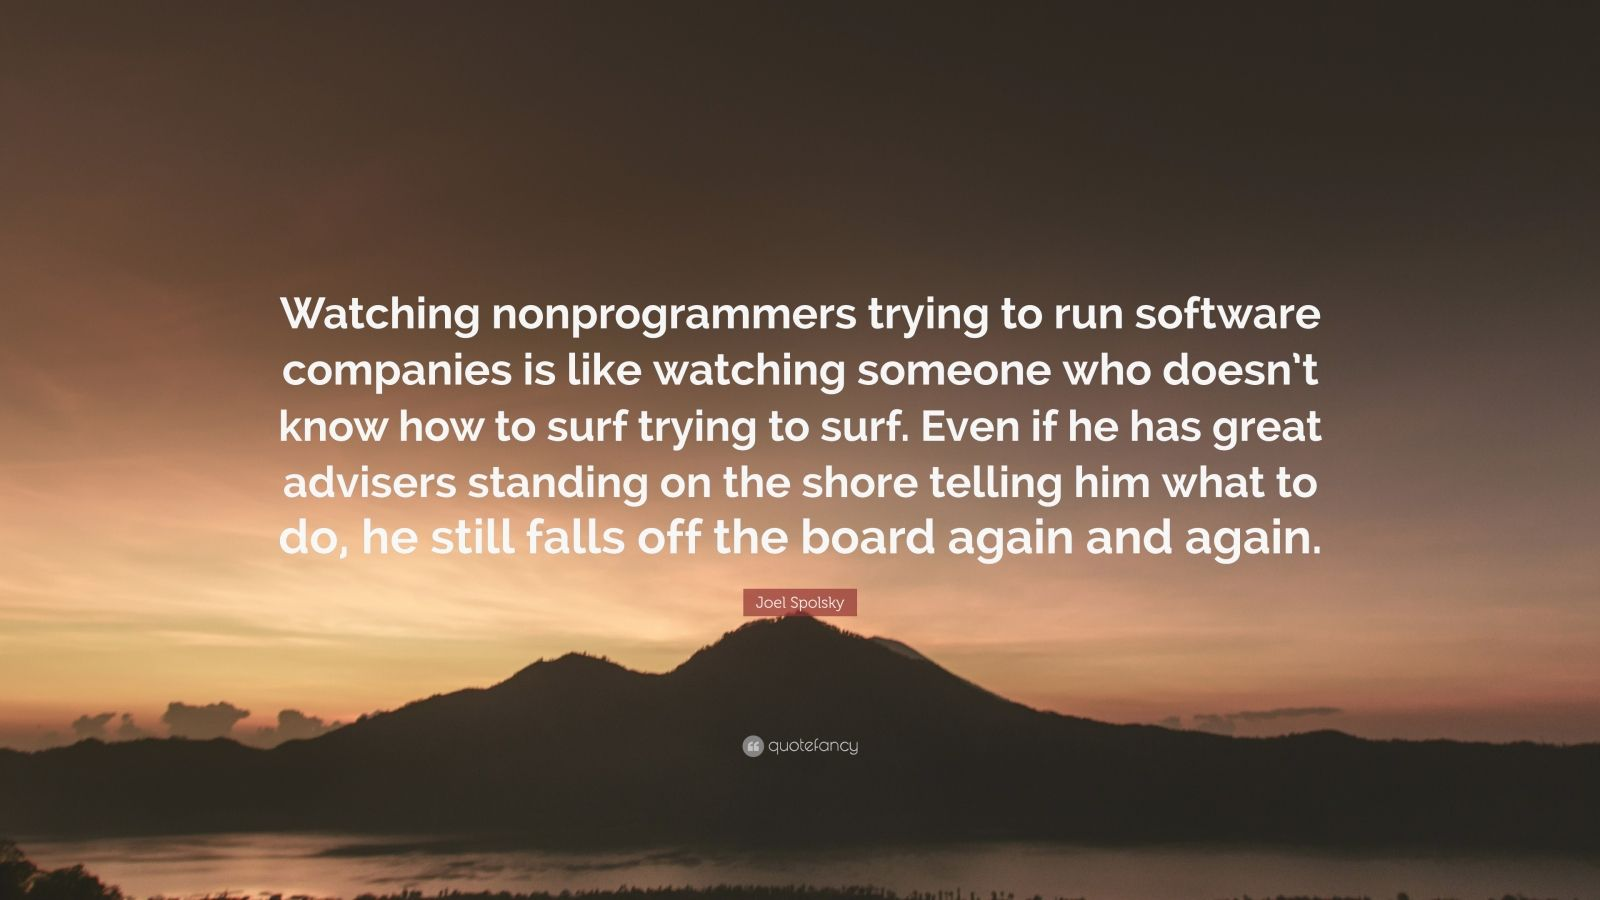 """Joel Spolsky Quote: """"Watching nonprogrammers trying to run software companies is like watching someone who doesn't know how to surf trying to surf. Even if he has great advisers standing on the shore telling him what to do, he still falls off the board again and again."""""""